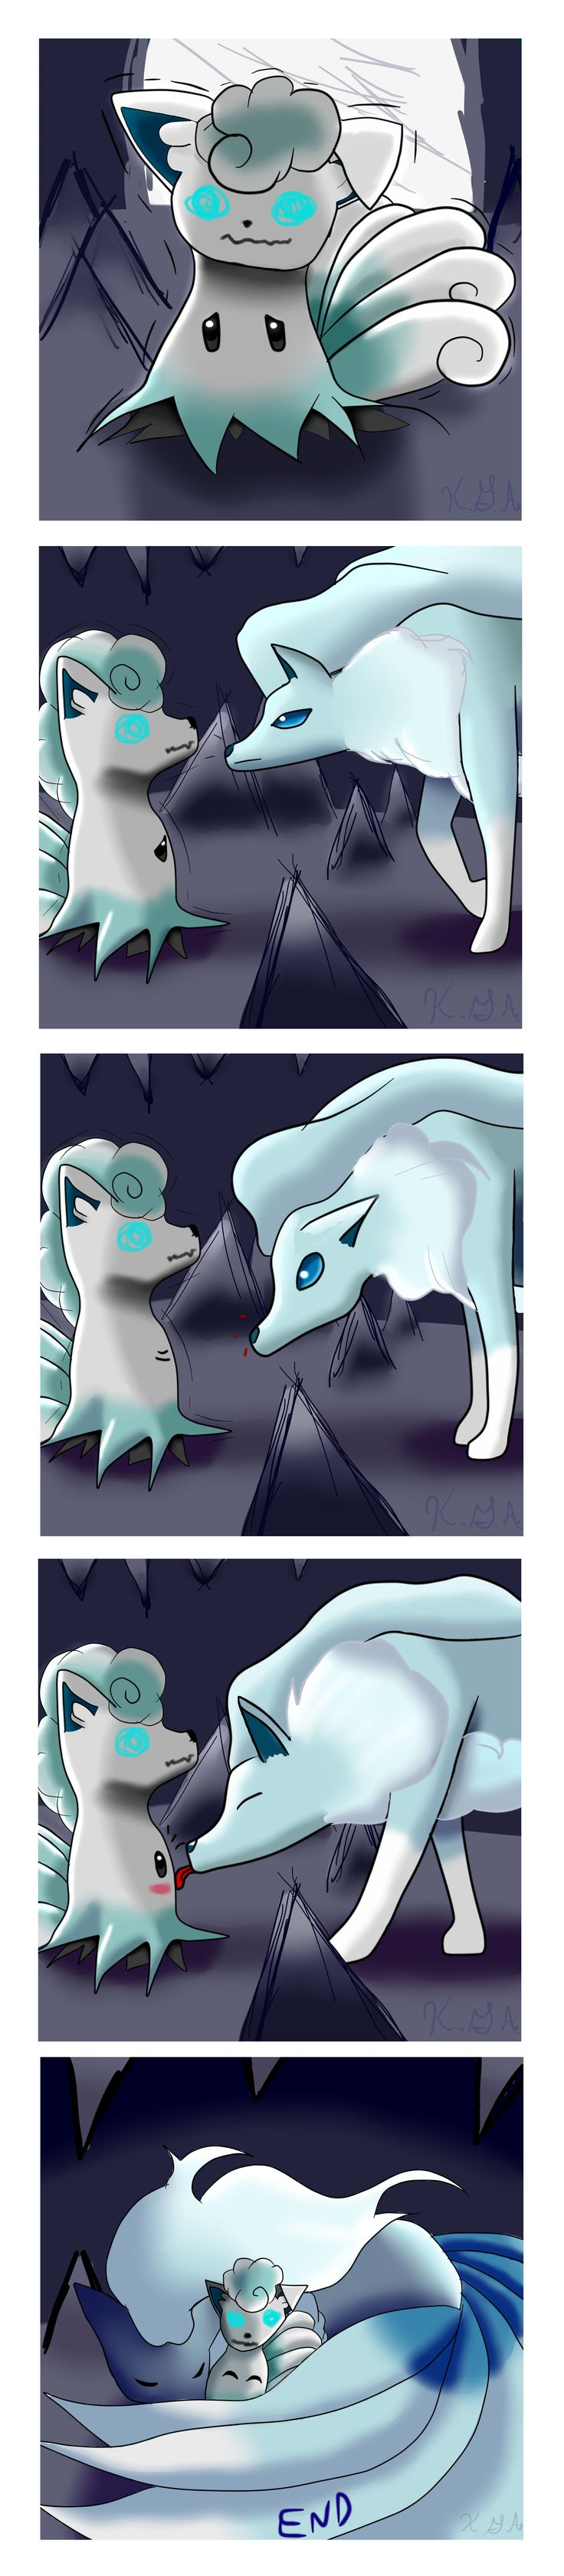 """""""Finally Accepted"""" By: Kalina Acosta  Vulpix has always been my favorite pokemon and I love the new Alolan design for it!!! I really really like Mimikyu too and wanted to try drawing it myself. Except I wanted to draw it dressed as an Alolan Vulpix.  I hope you guys like it!!!"""